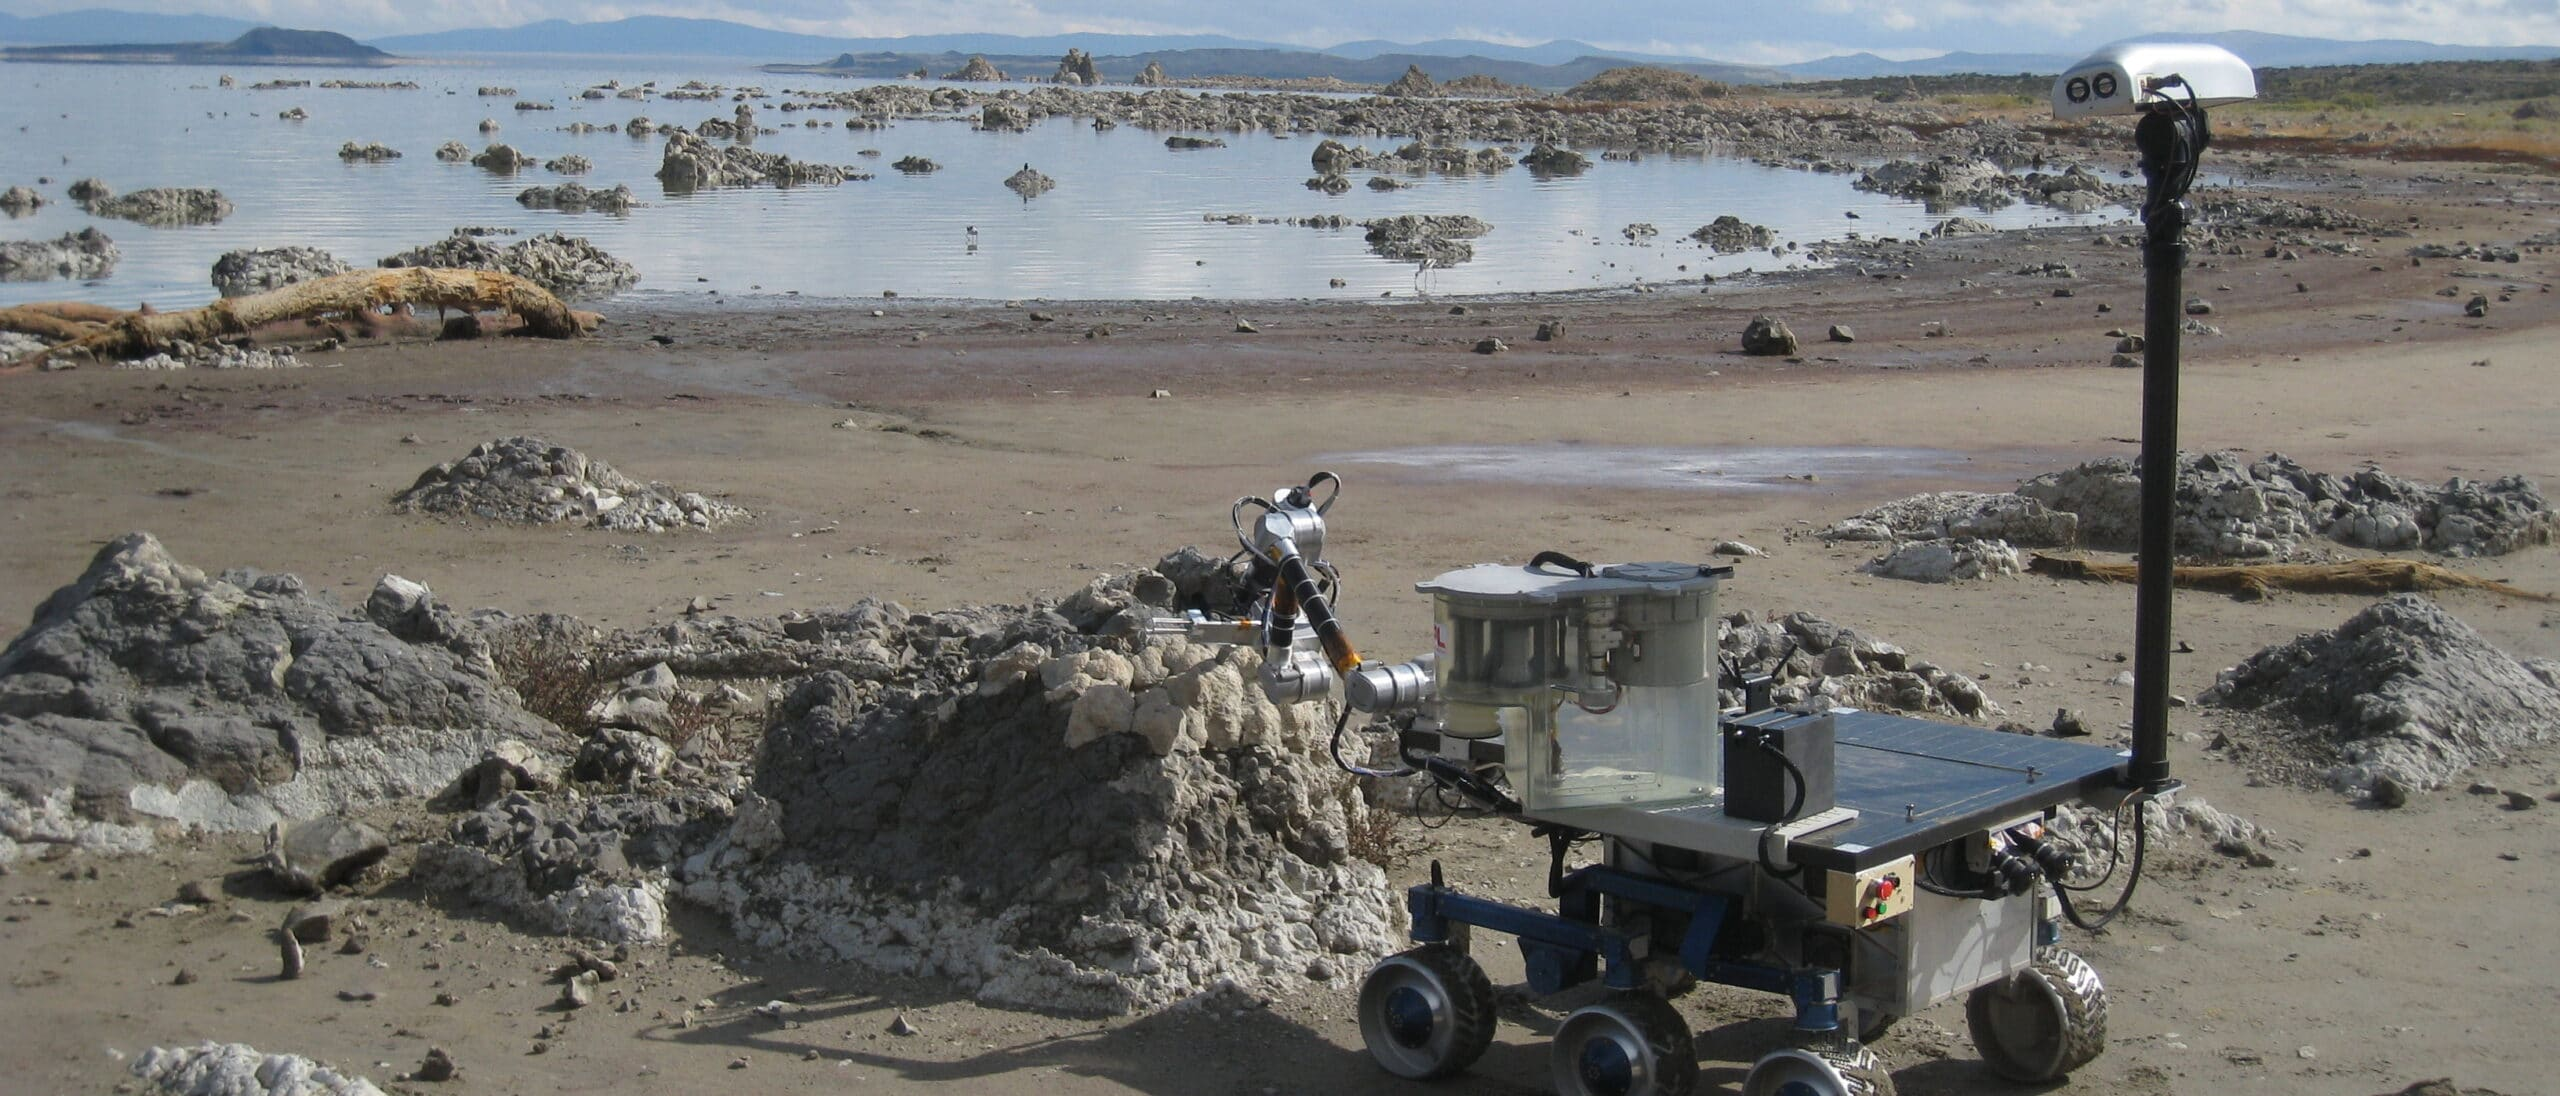 The mars rover, a metal machine with six wheels sits on the beach of Mono Lake near outcroppings of tufa.